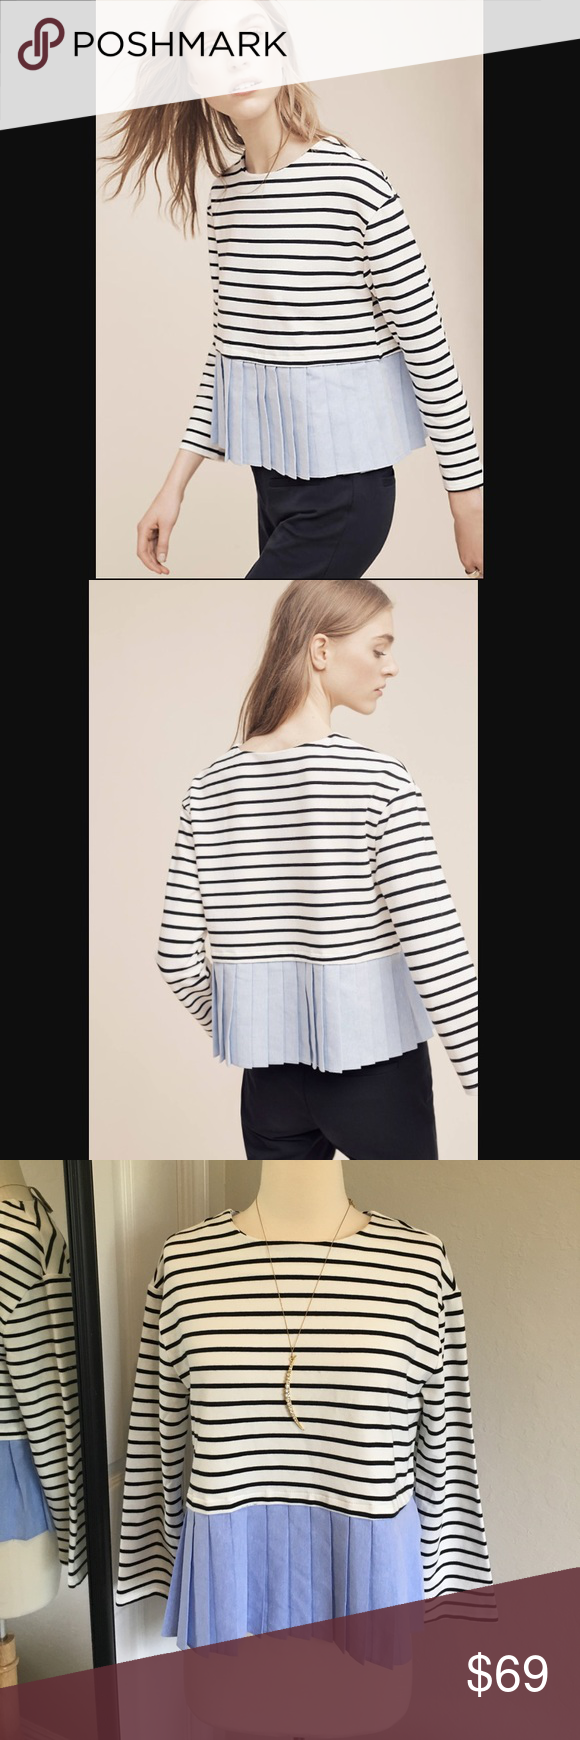 """Anthropologie Deletta Wylie top NWT. Size S. Soft and stretchable material. Cute pleated portion. Nice combination of color. 21"""" long. Shoulder across 18"""". Armpit across 19""""1/2. Anthropologie Tops"""